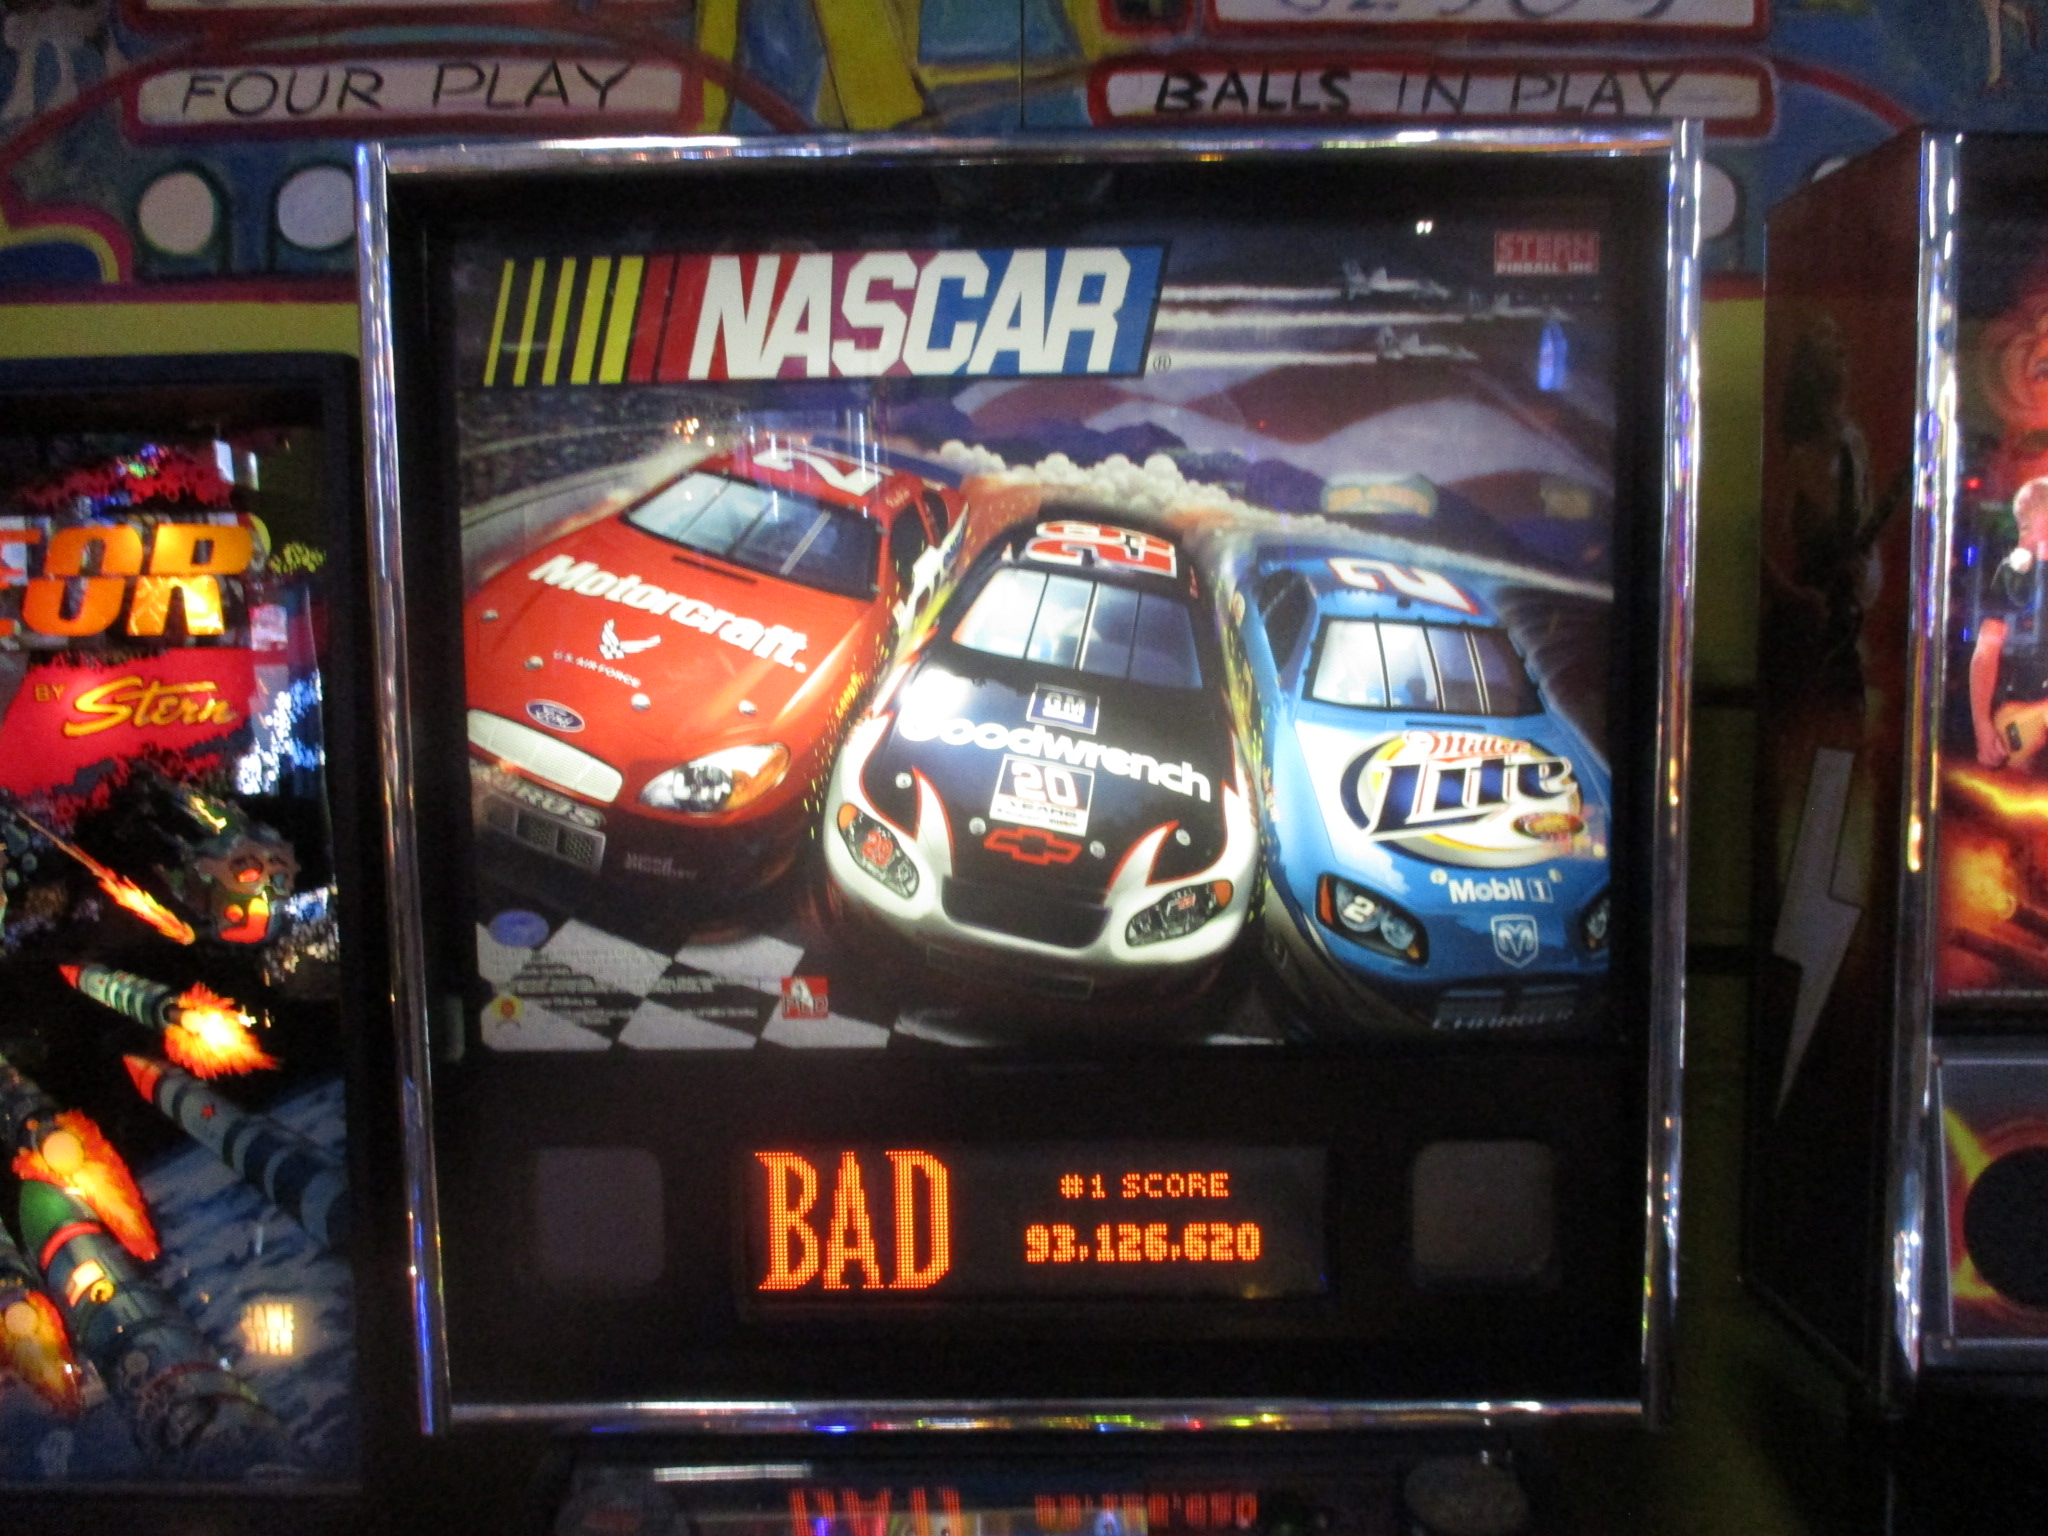 ed1475: NASCAR / Grand Prix (Pinball: 3 Balls) 7,361,630 points on 2017-08-24 19:48:47